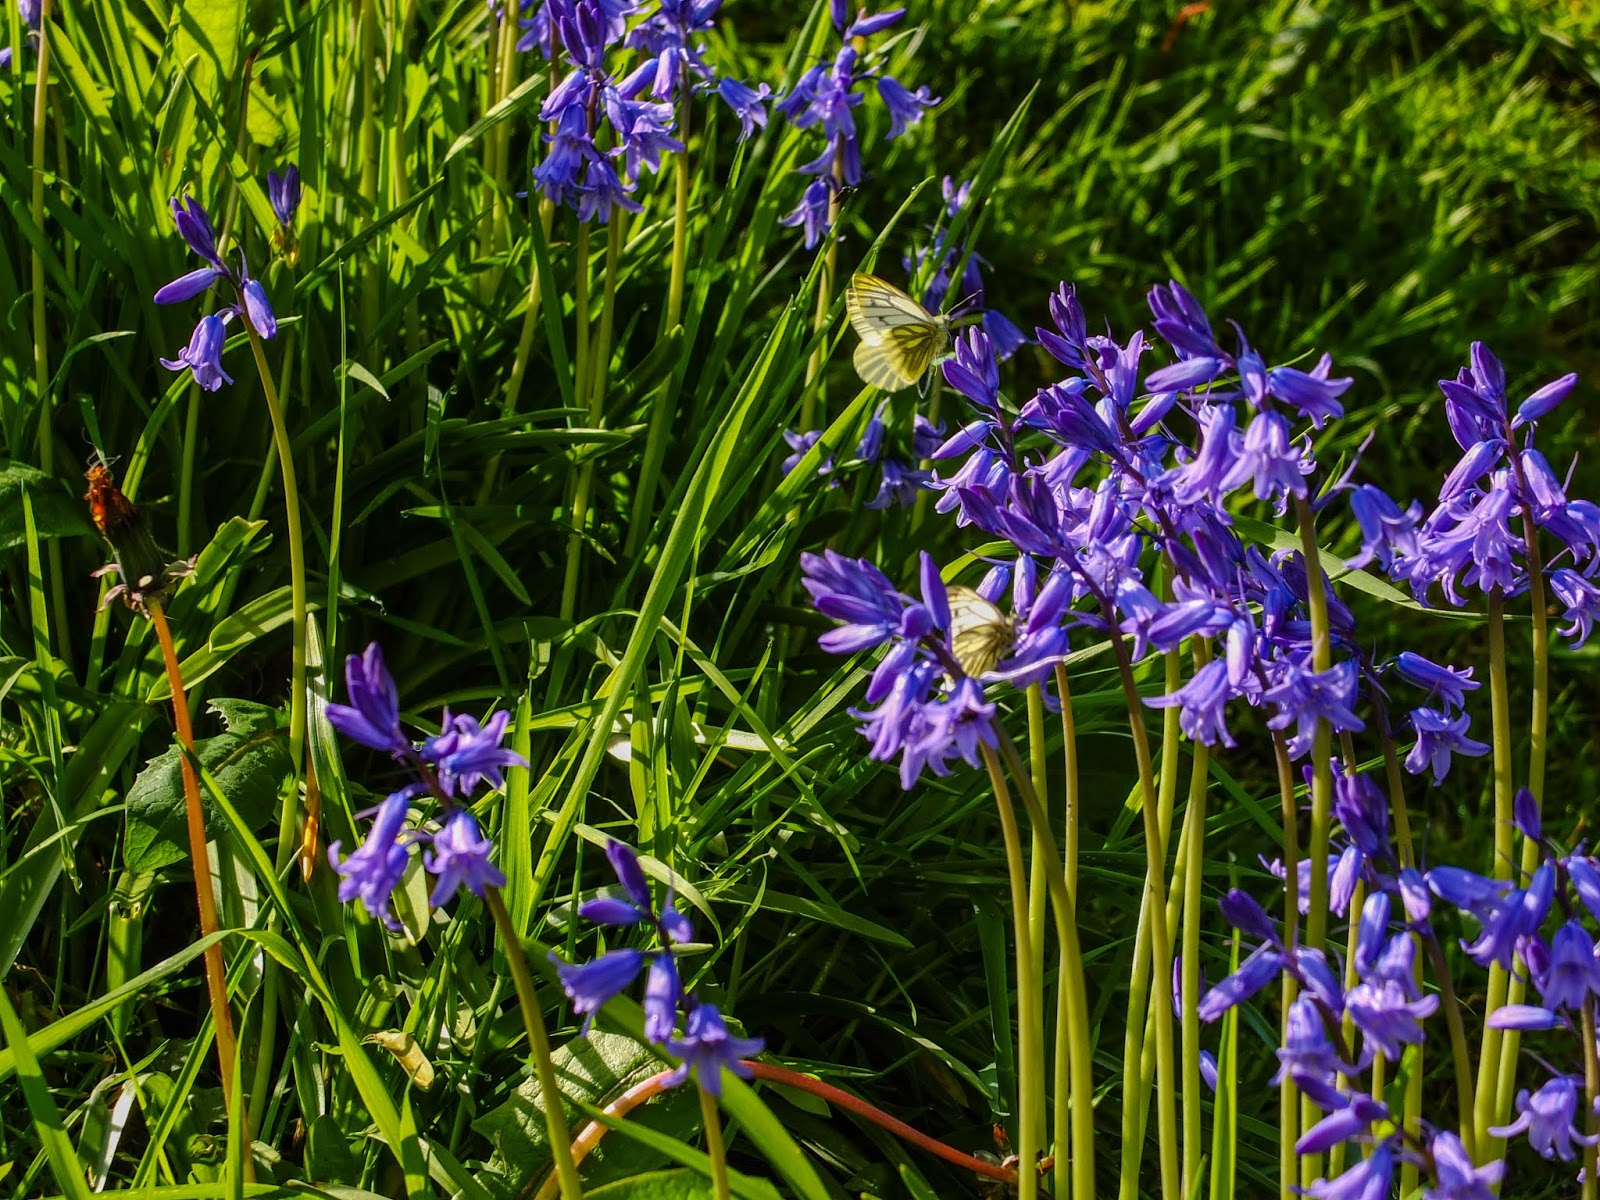 Light yellow, white butterflies collecting nectar from bluebell flowers.